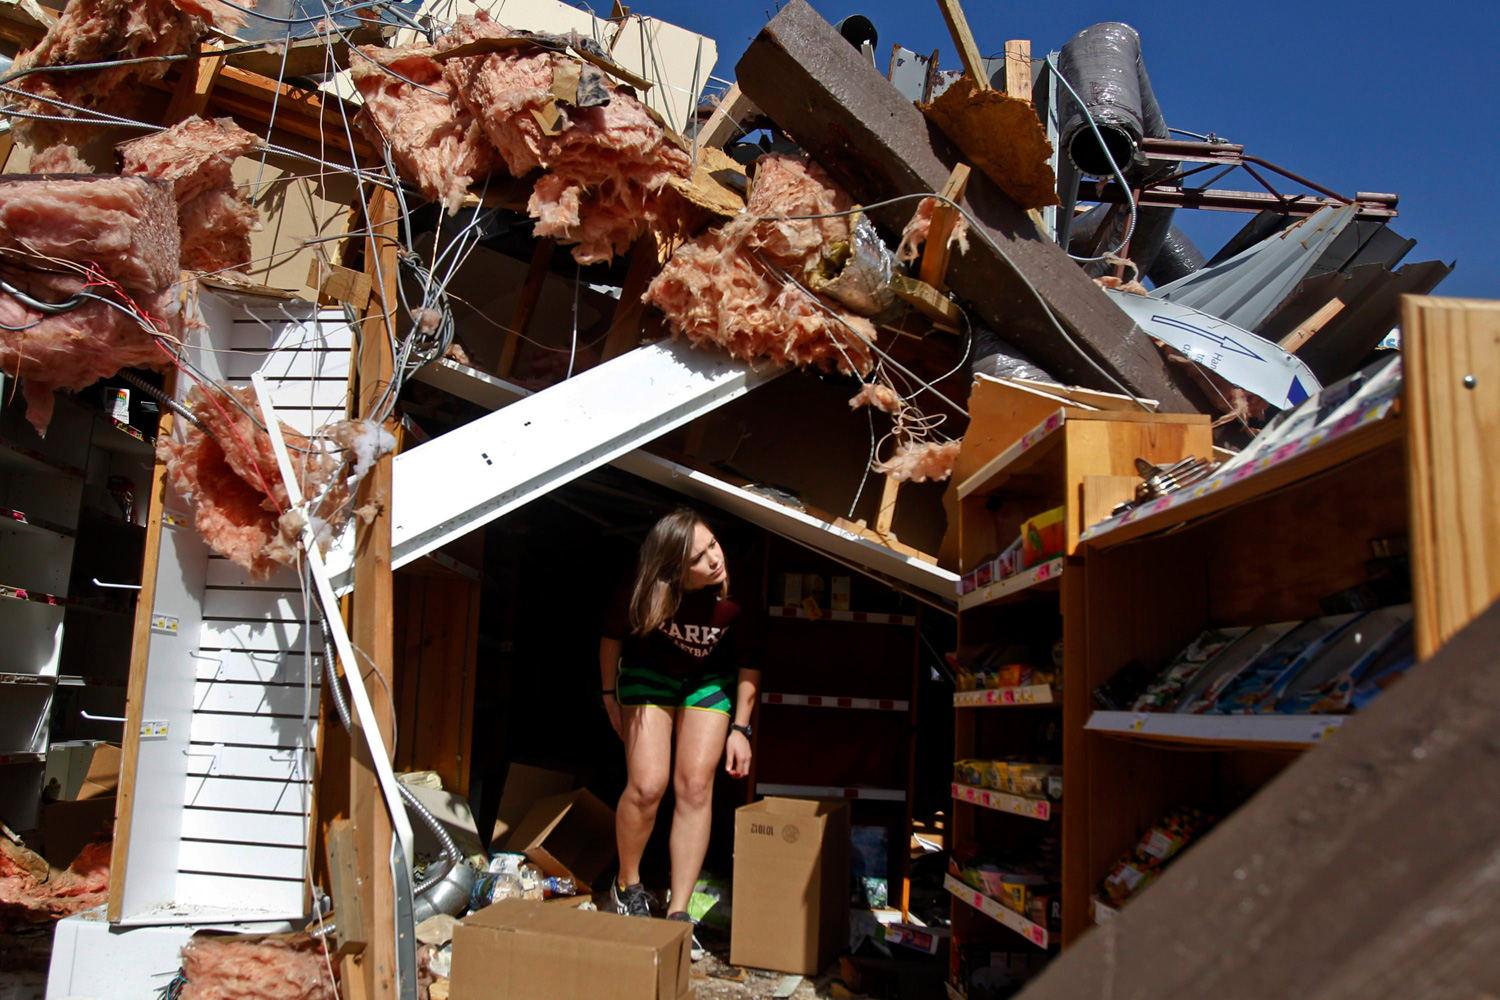 Feb. 29, 2012. Carissa Westfall helps salvage products from Nature's Sunshine Health Foods store in Branson, Mo. after storms spawned tornadoes that ripped through the U.S. Midwest.